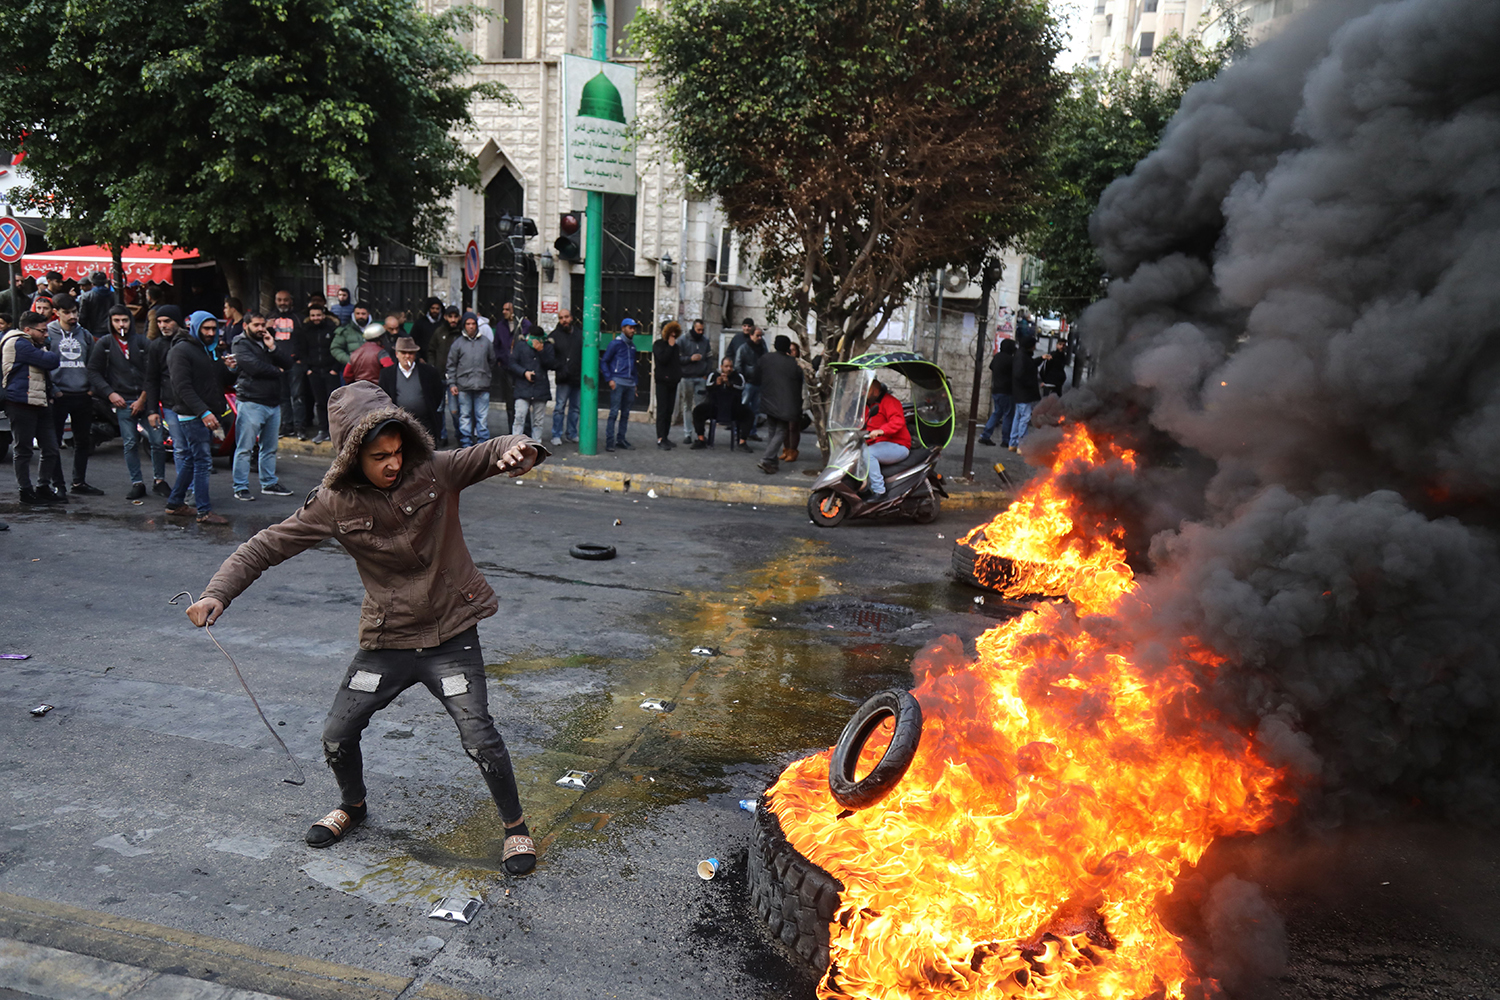 A Lebanese protester throws a tire on a burning pile blocking the road in Beirut on Jan. 22. IBRAHIM AMRO/AFP via Getty Images